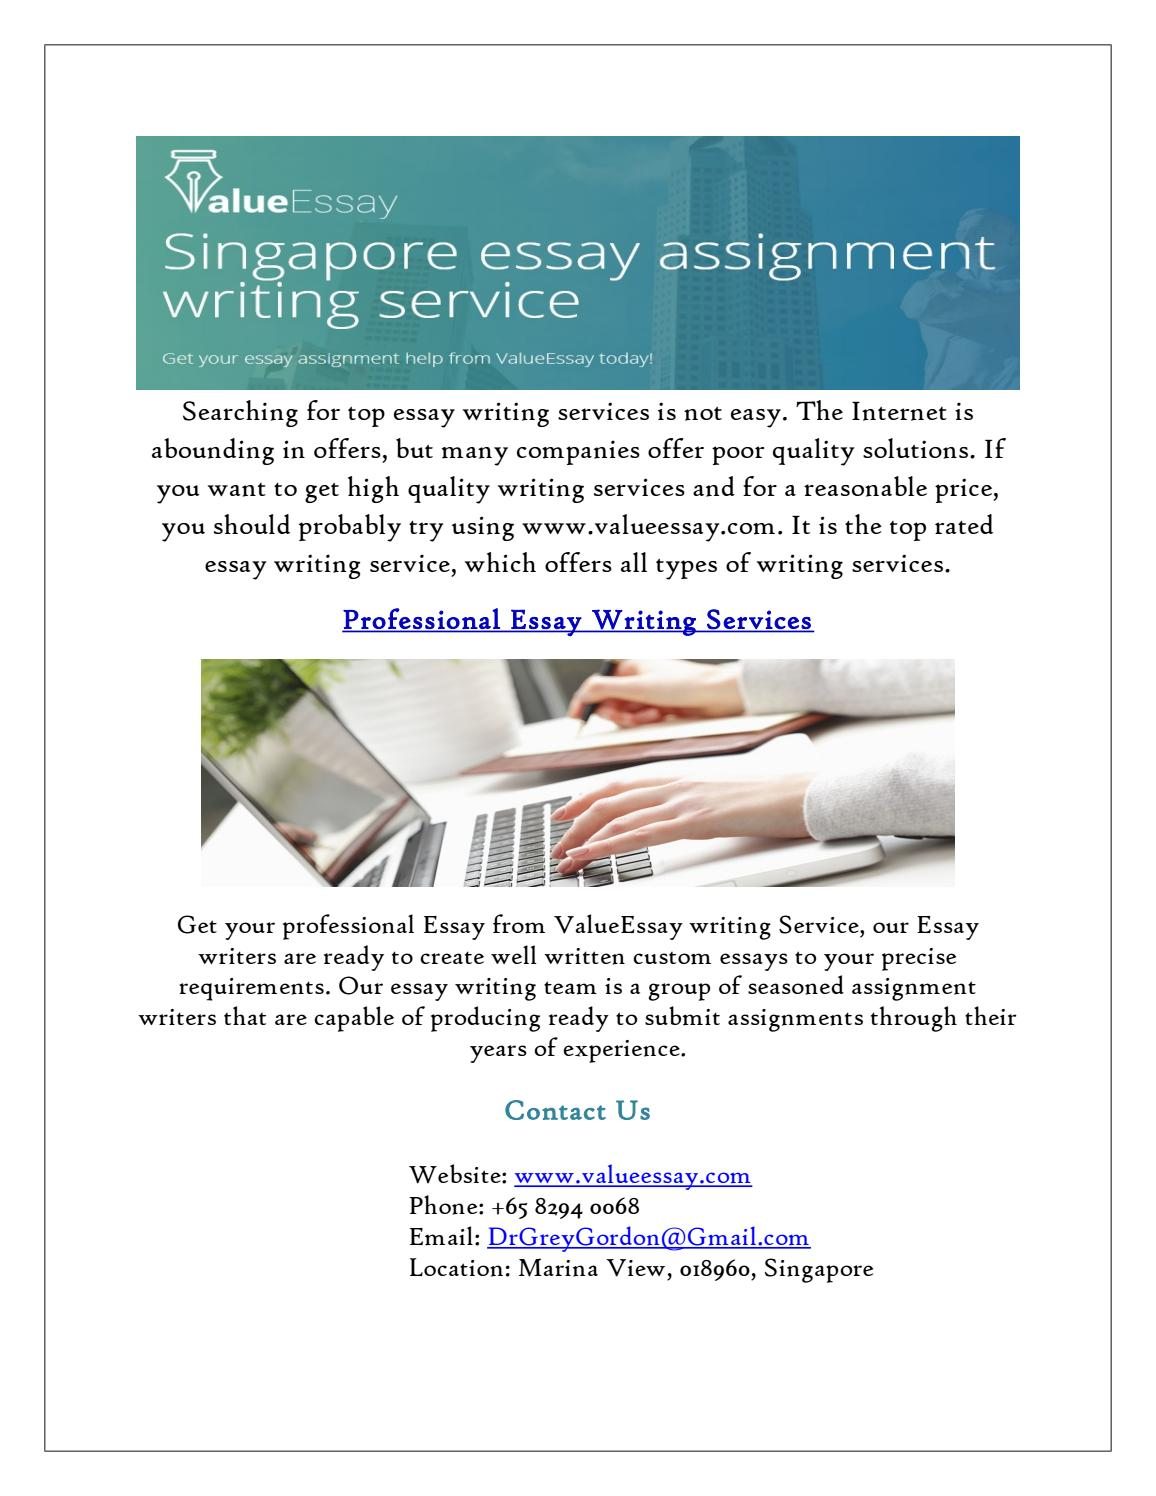 Engineering essay writers services 1984 essay conclusion